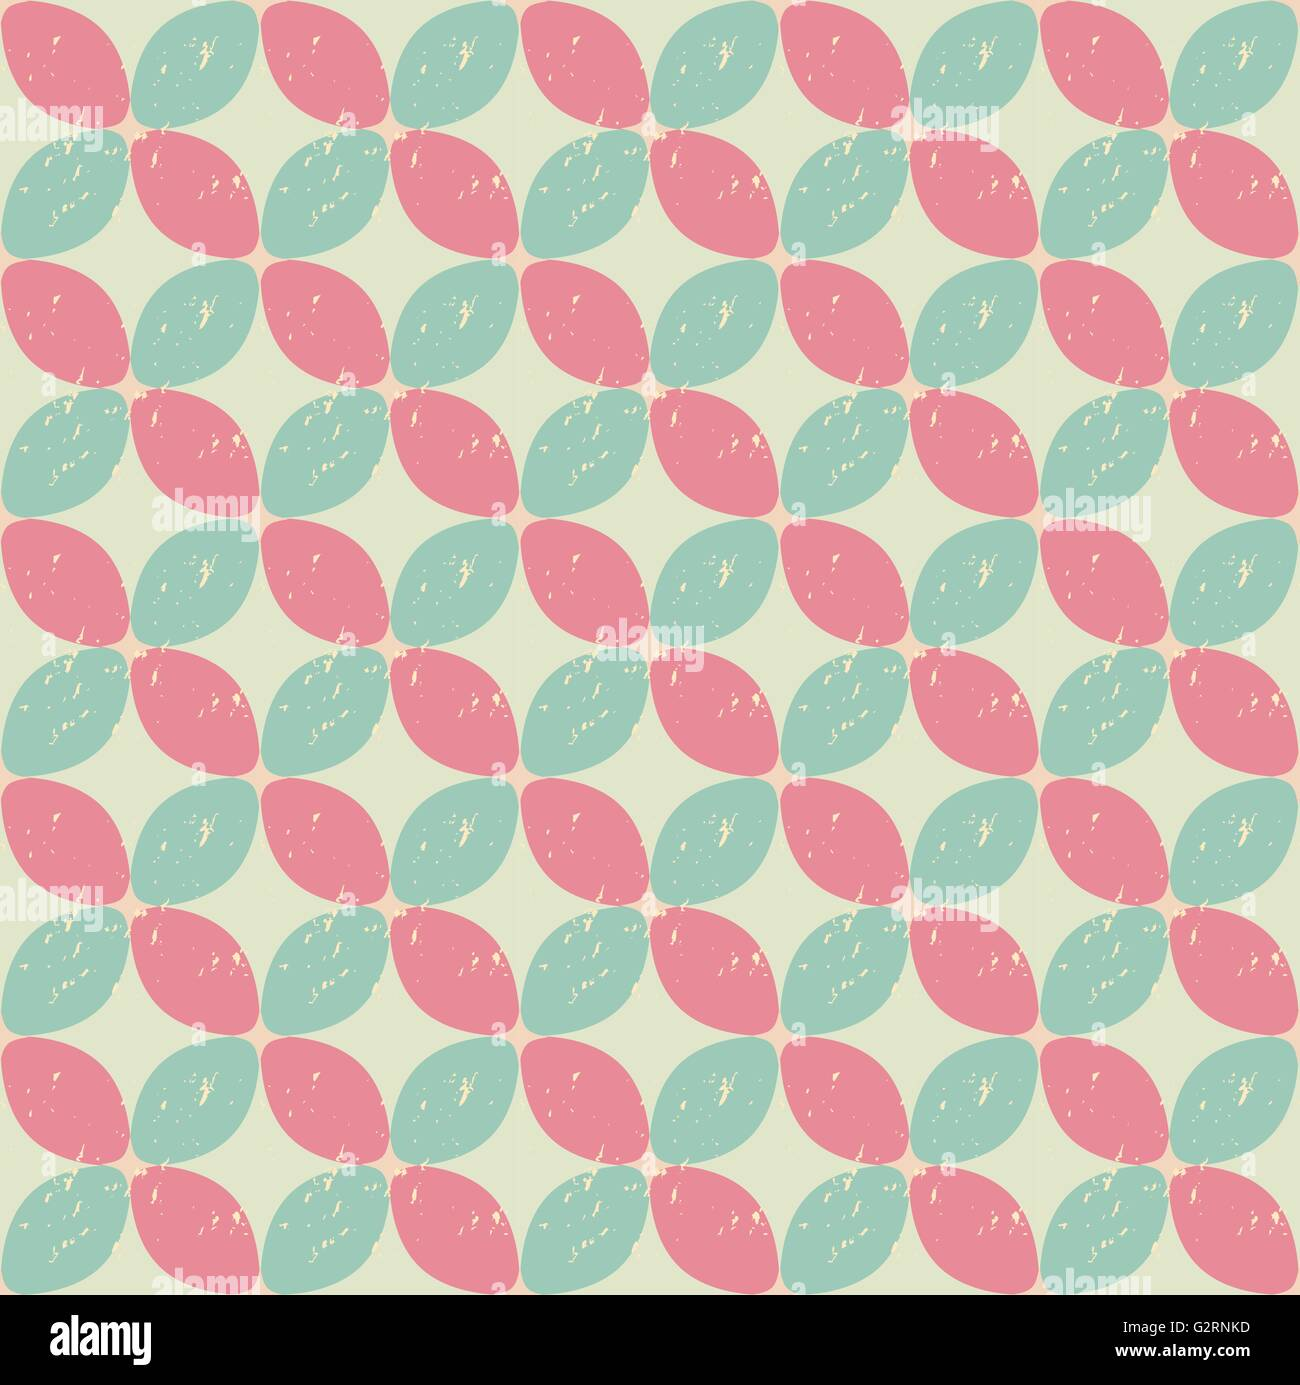 Vintage Flower Pattern Seamless Grunge Design Swatches Vector Endless Texture Can Be Used For Wallpaper F